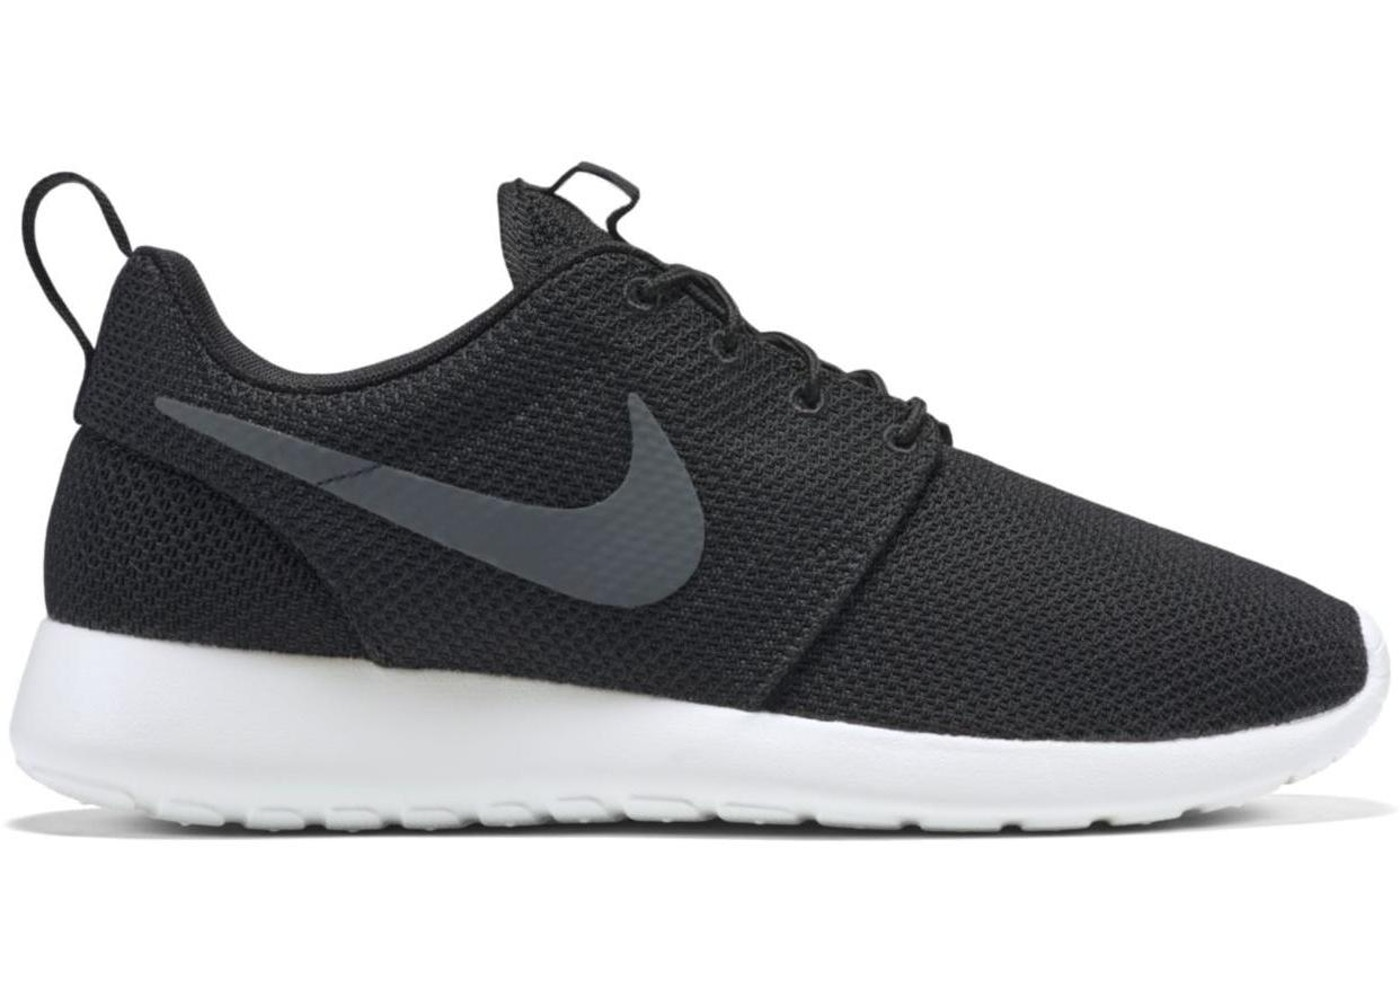 52227a9cbeff HypeAnalyzer · Nike Roshe Run Black Anthracite Sail